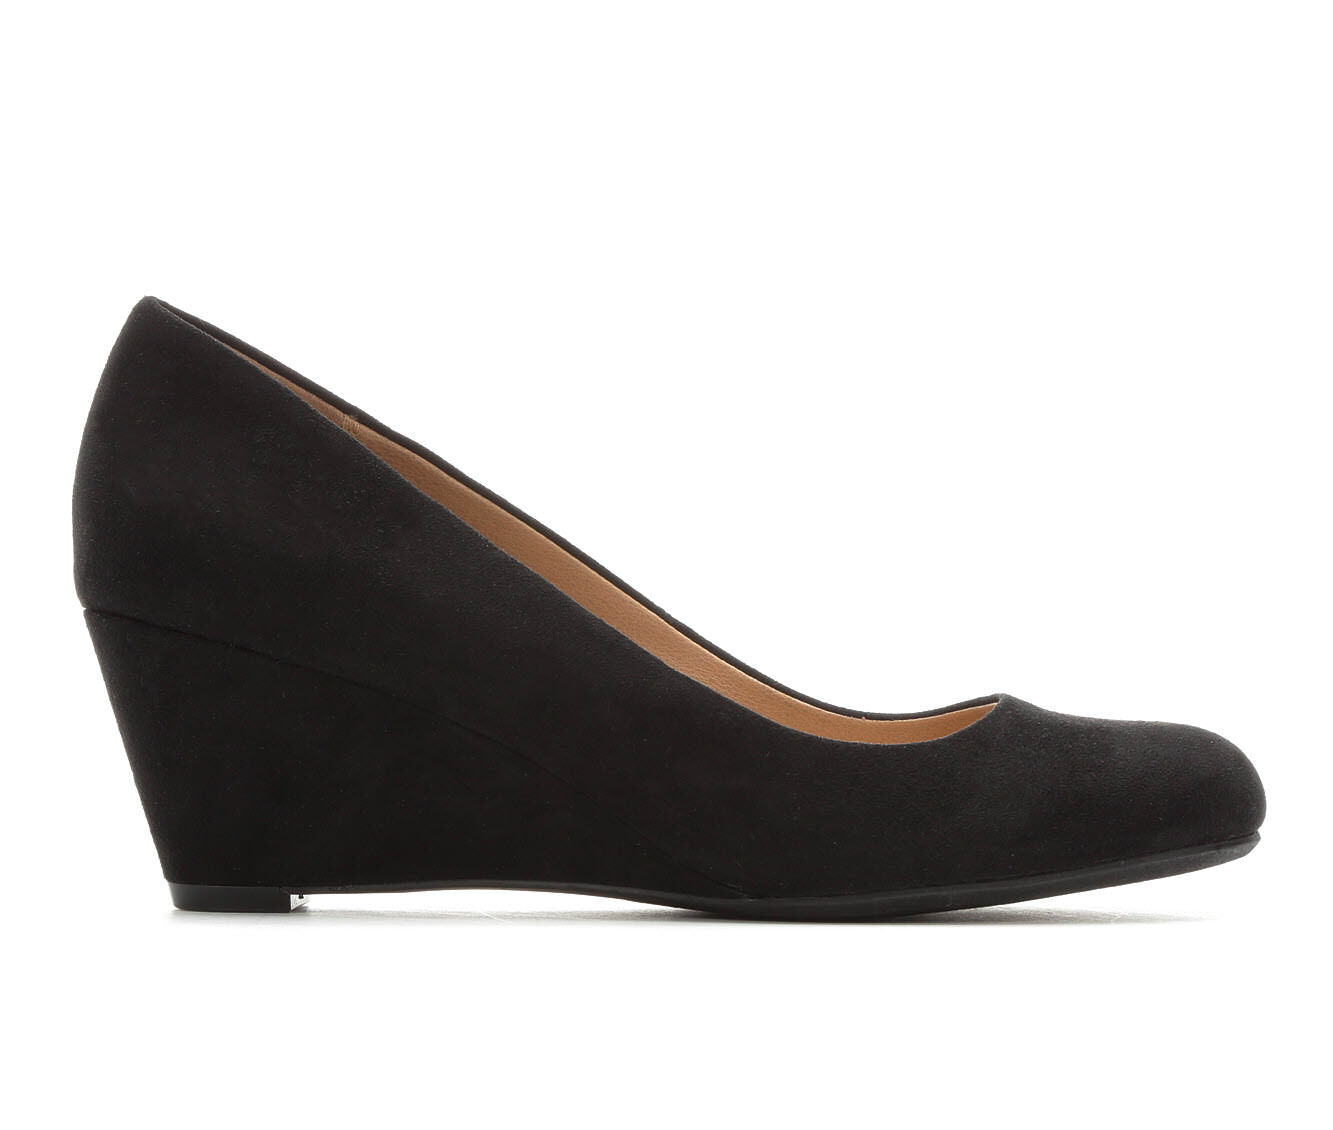 Women's David Aaron Traci Wedges Black Micro